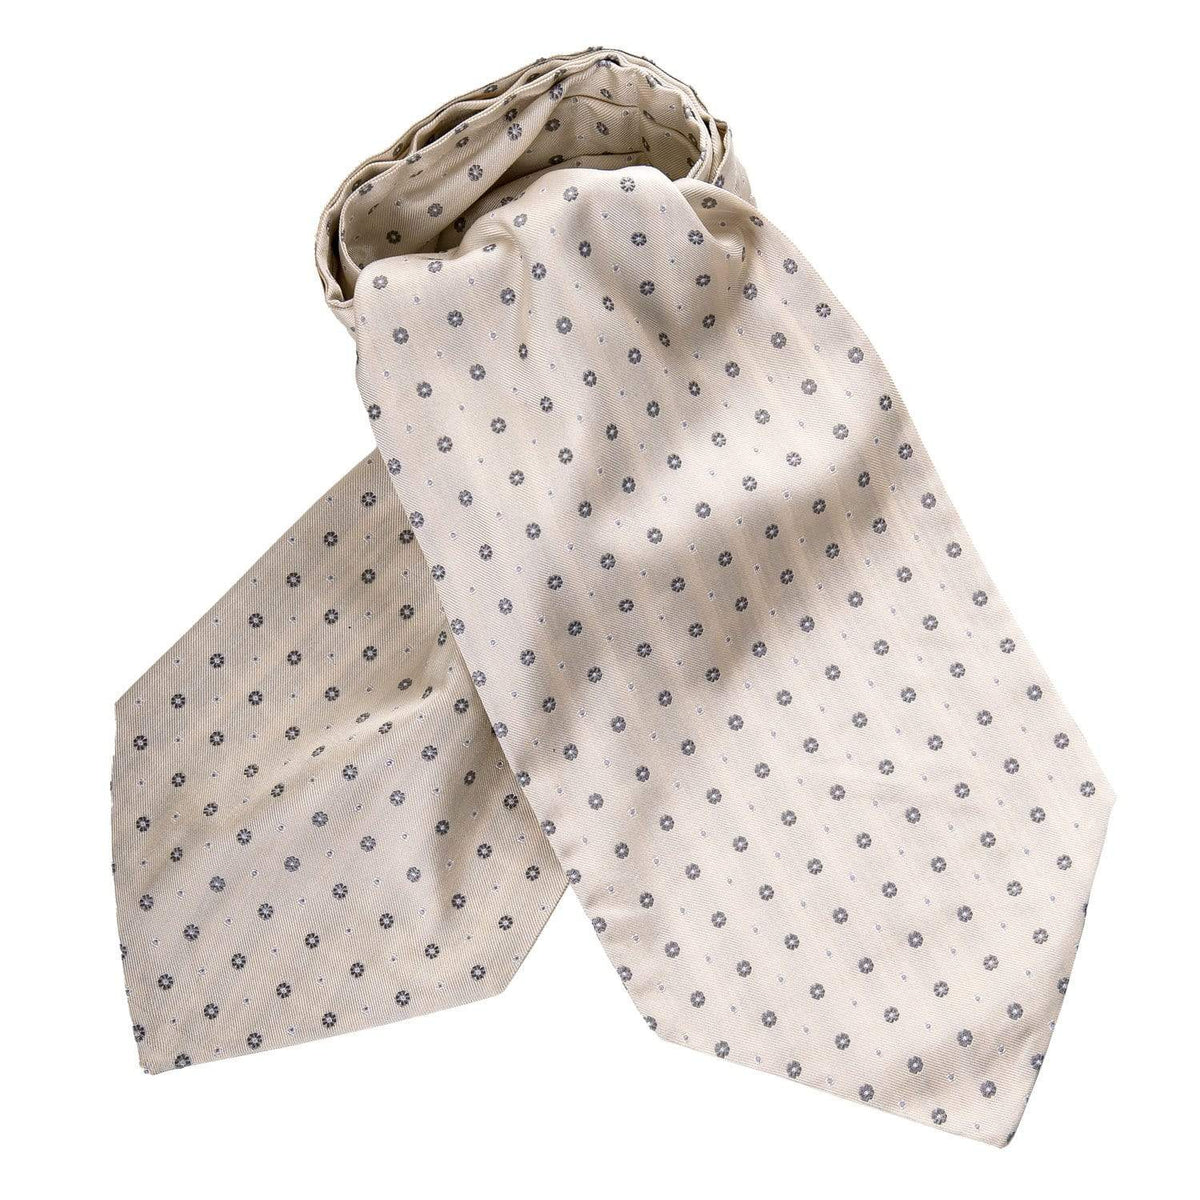 Ascot Tie for Wedding - Ivory & Silver Silk - Formal